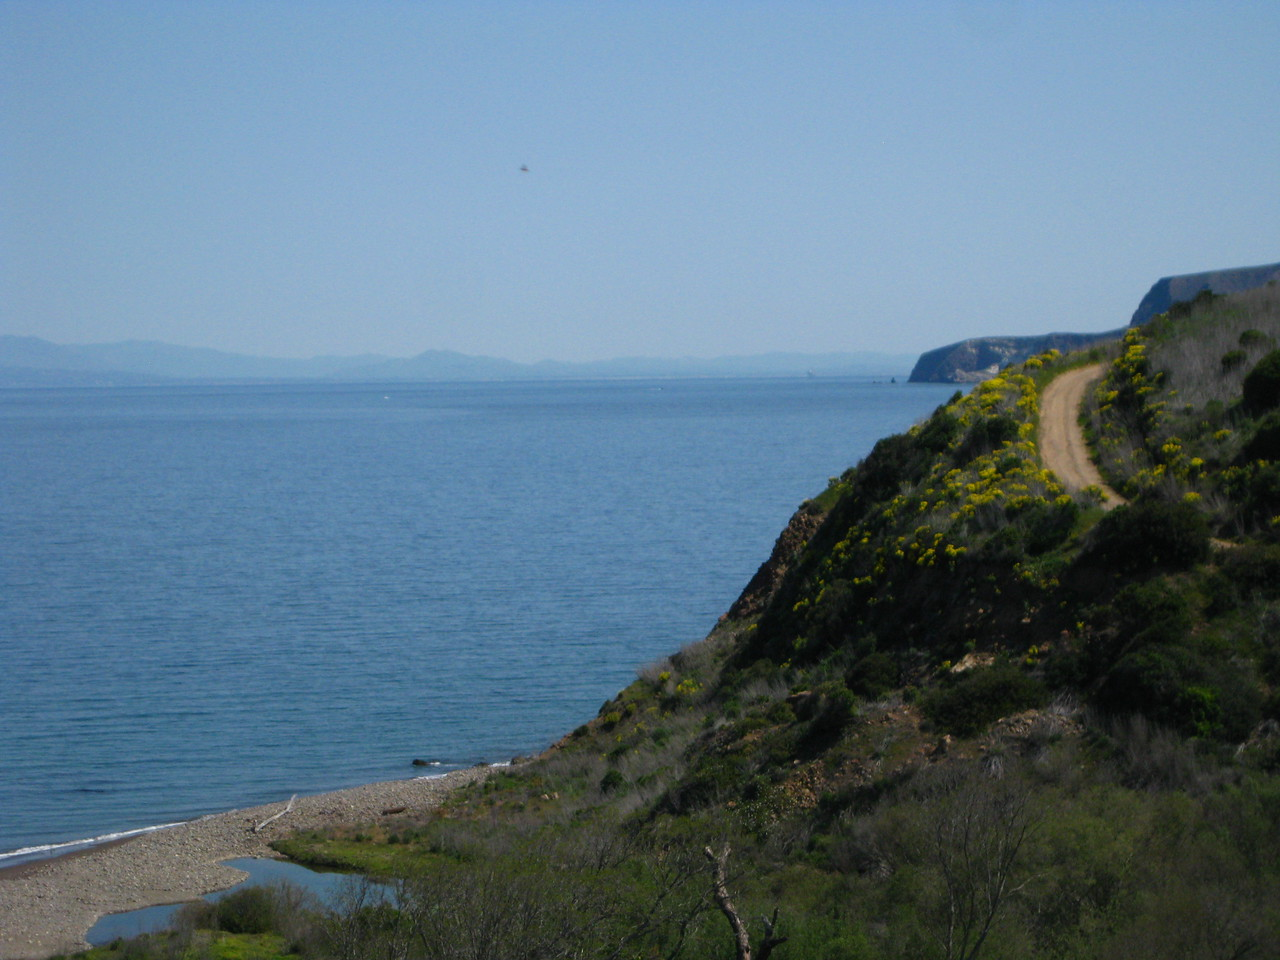 Behind the cliffs far away is Scorpion Ranch landing. Coast with Santa Monica Mountains in the background